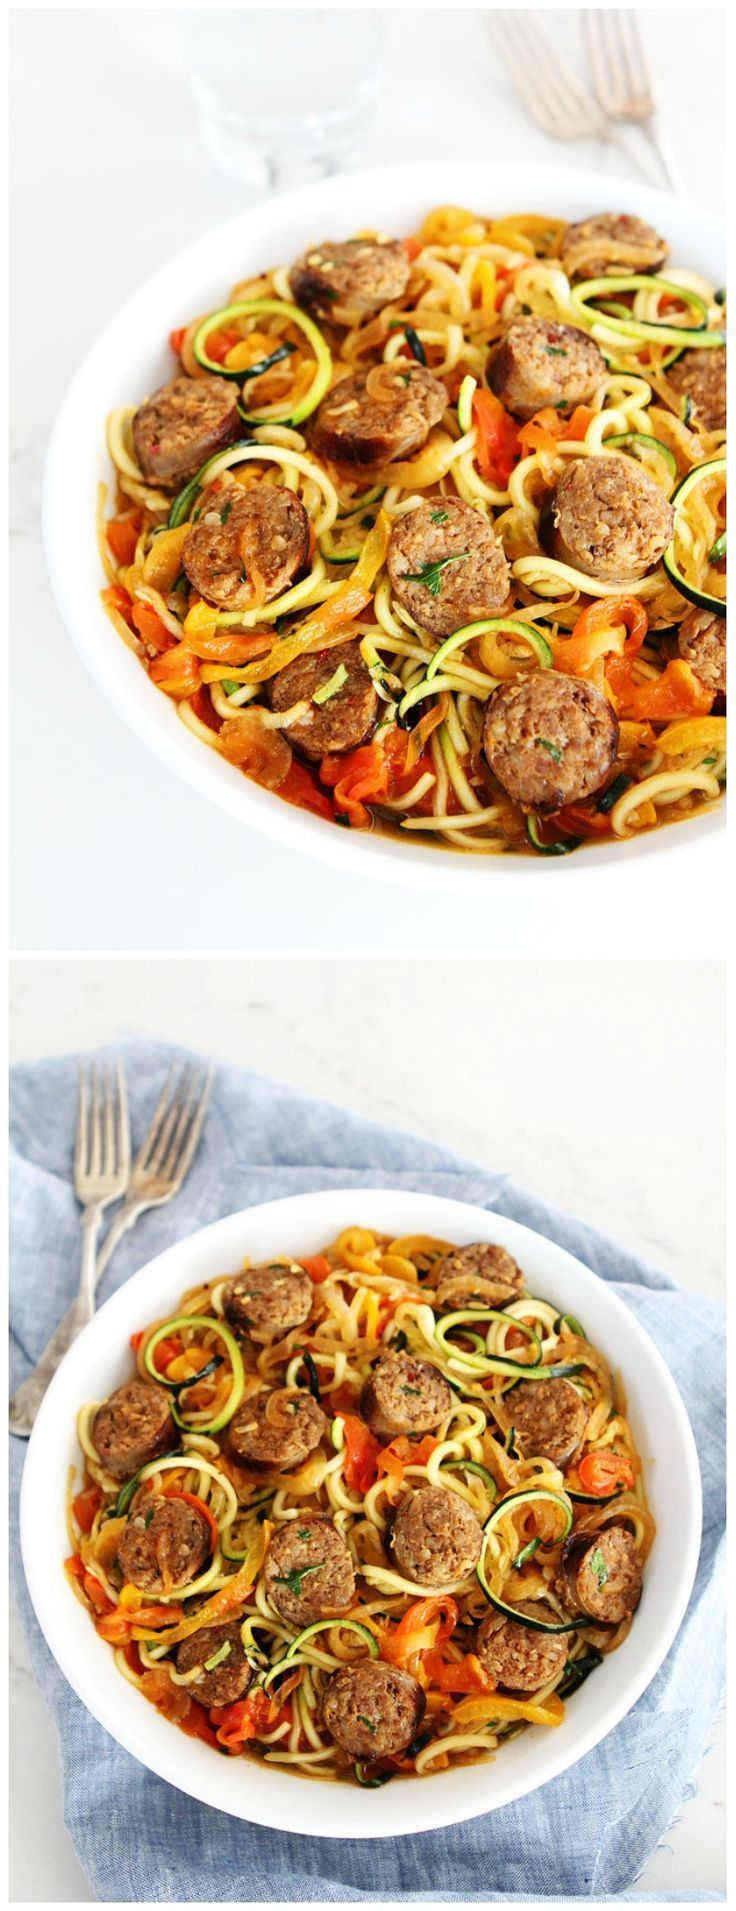 Sausage and Peppers with Zucchini Noodles Recipe on twopeasandtheirpod.com Sweet and spicy Italian sausage with peppers, onions, and zucchini noodles in a simple garlic tomato sauce. This quick and ea